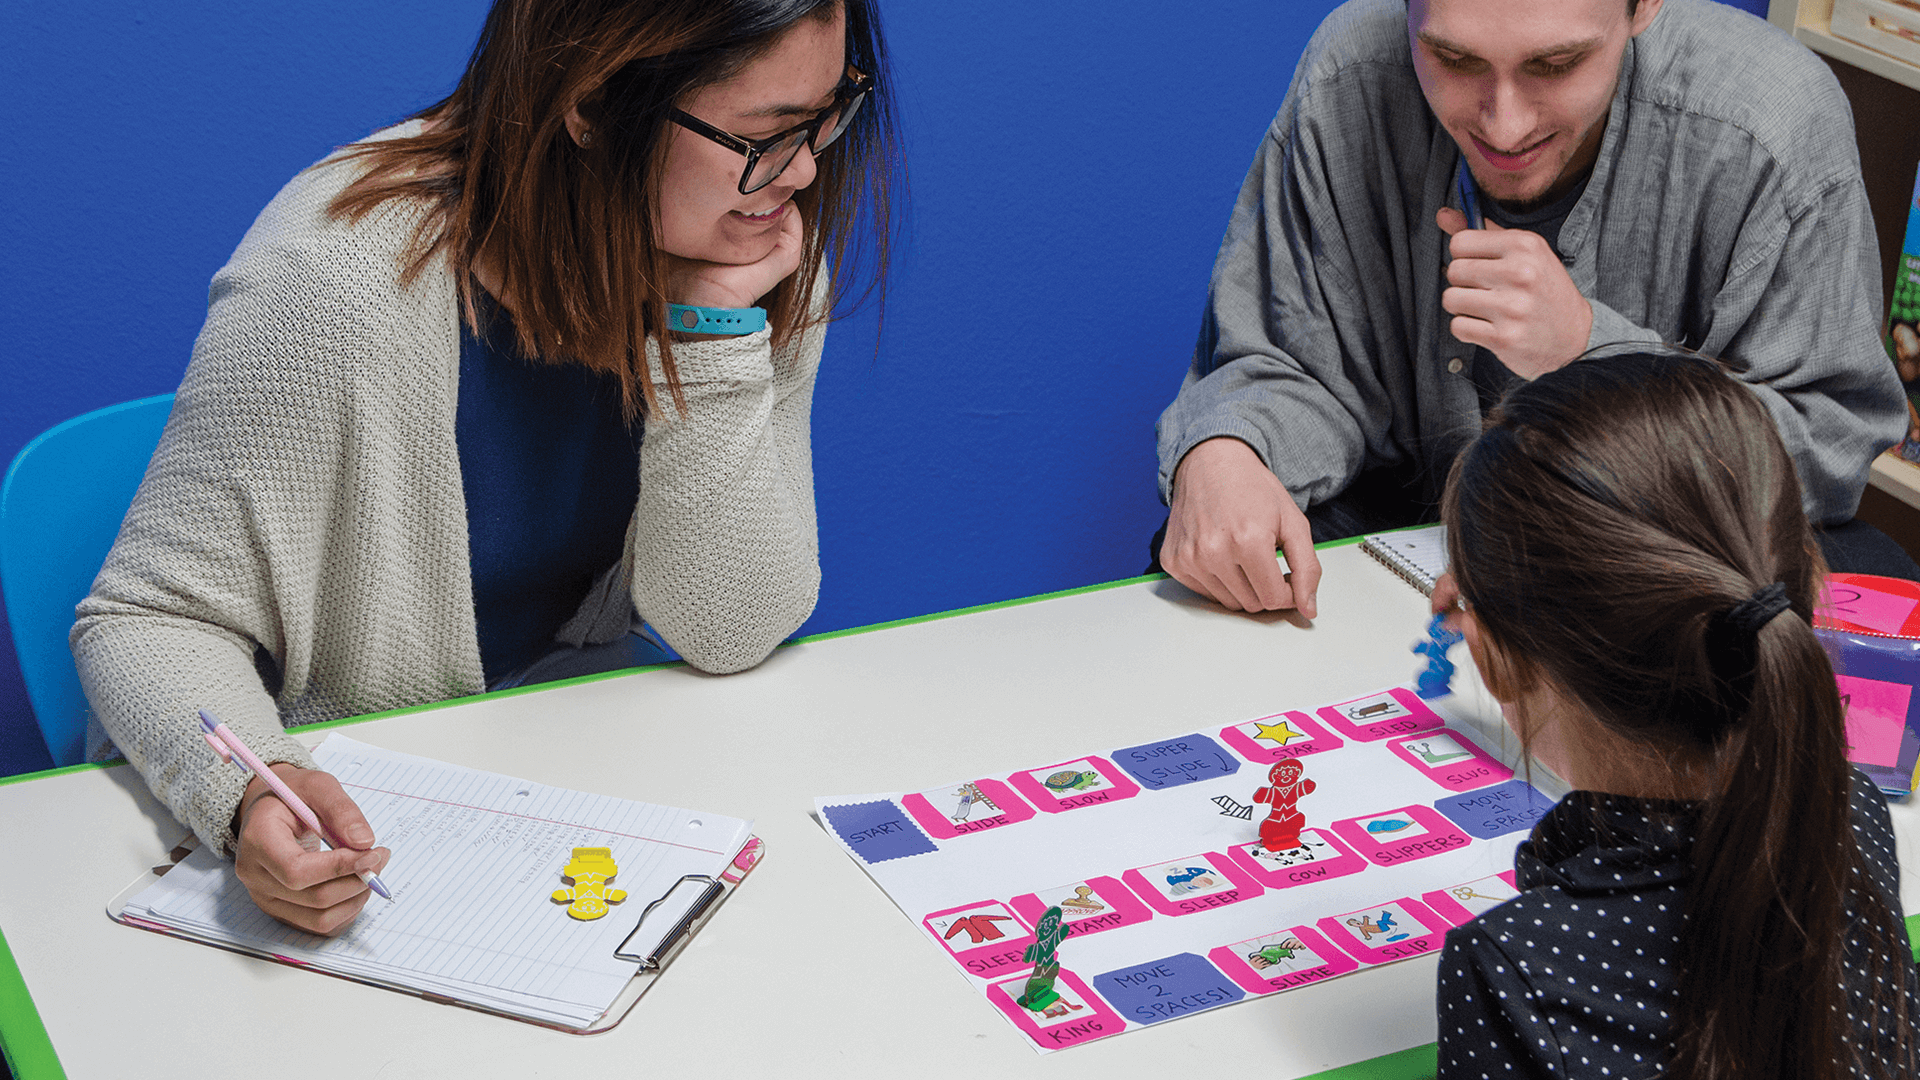 Adult male playing a board game with female child, as adult female students watches and takes notes